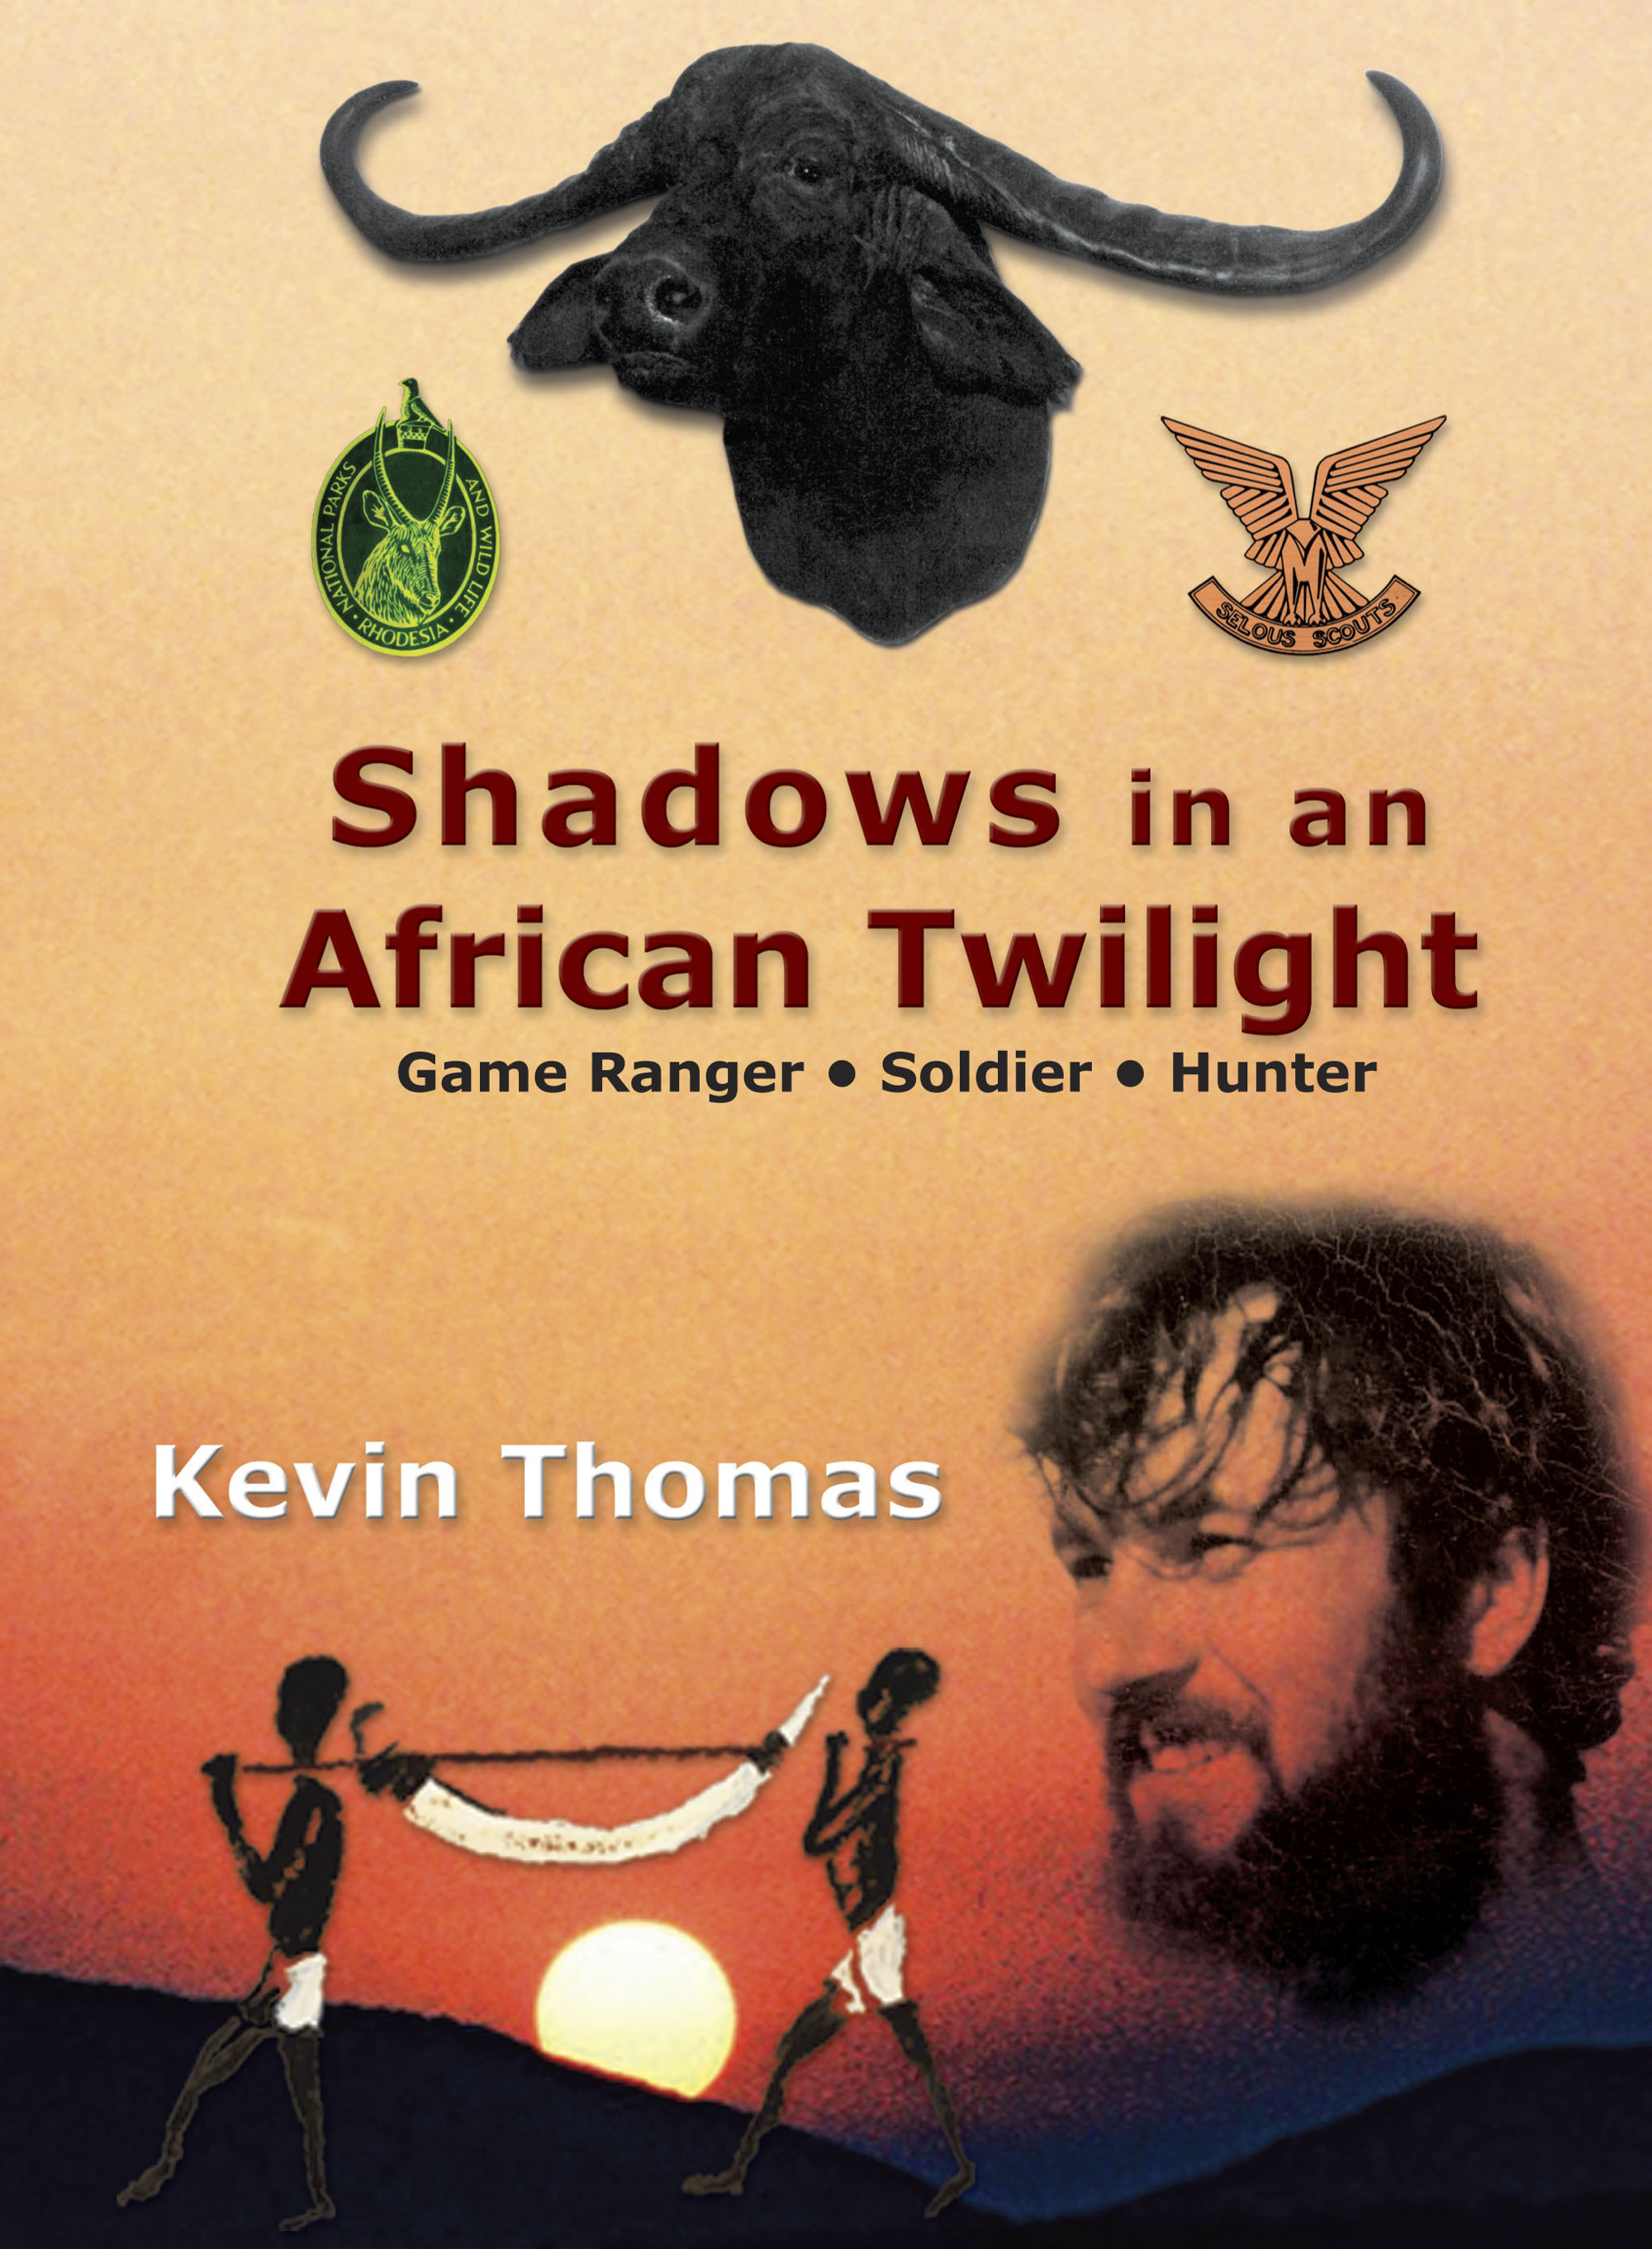 shadows-in-an-african-twilight-front.jpg